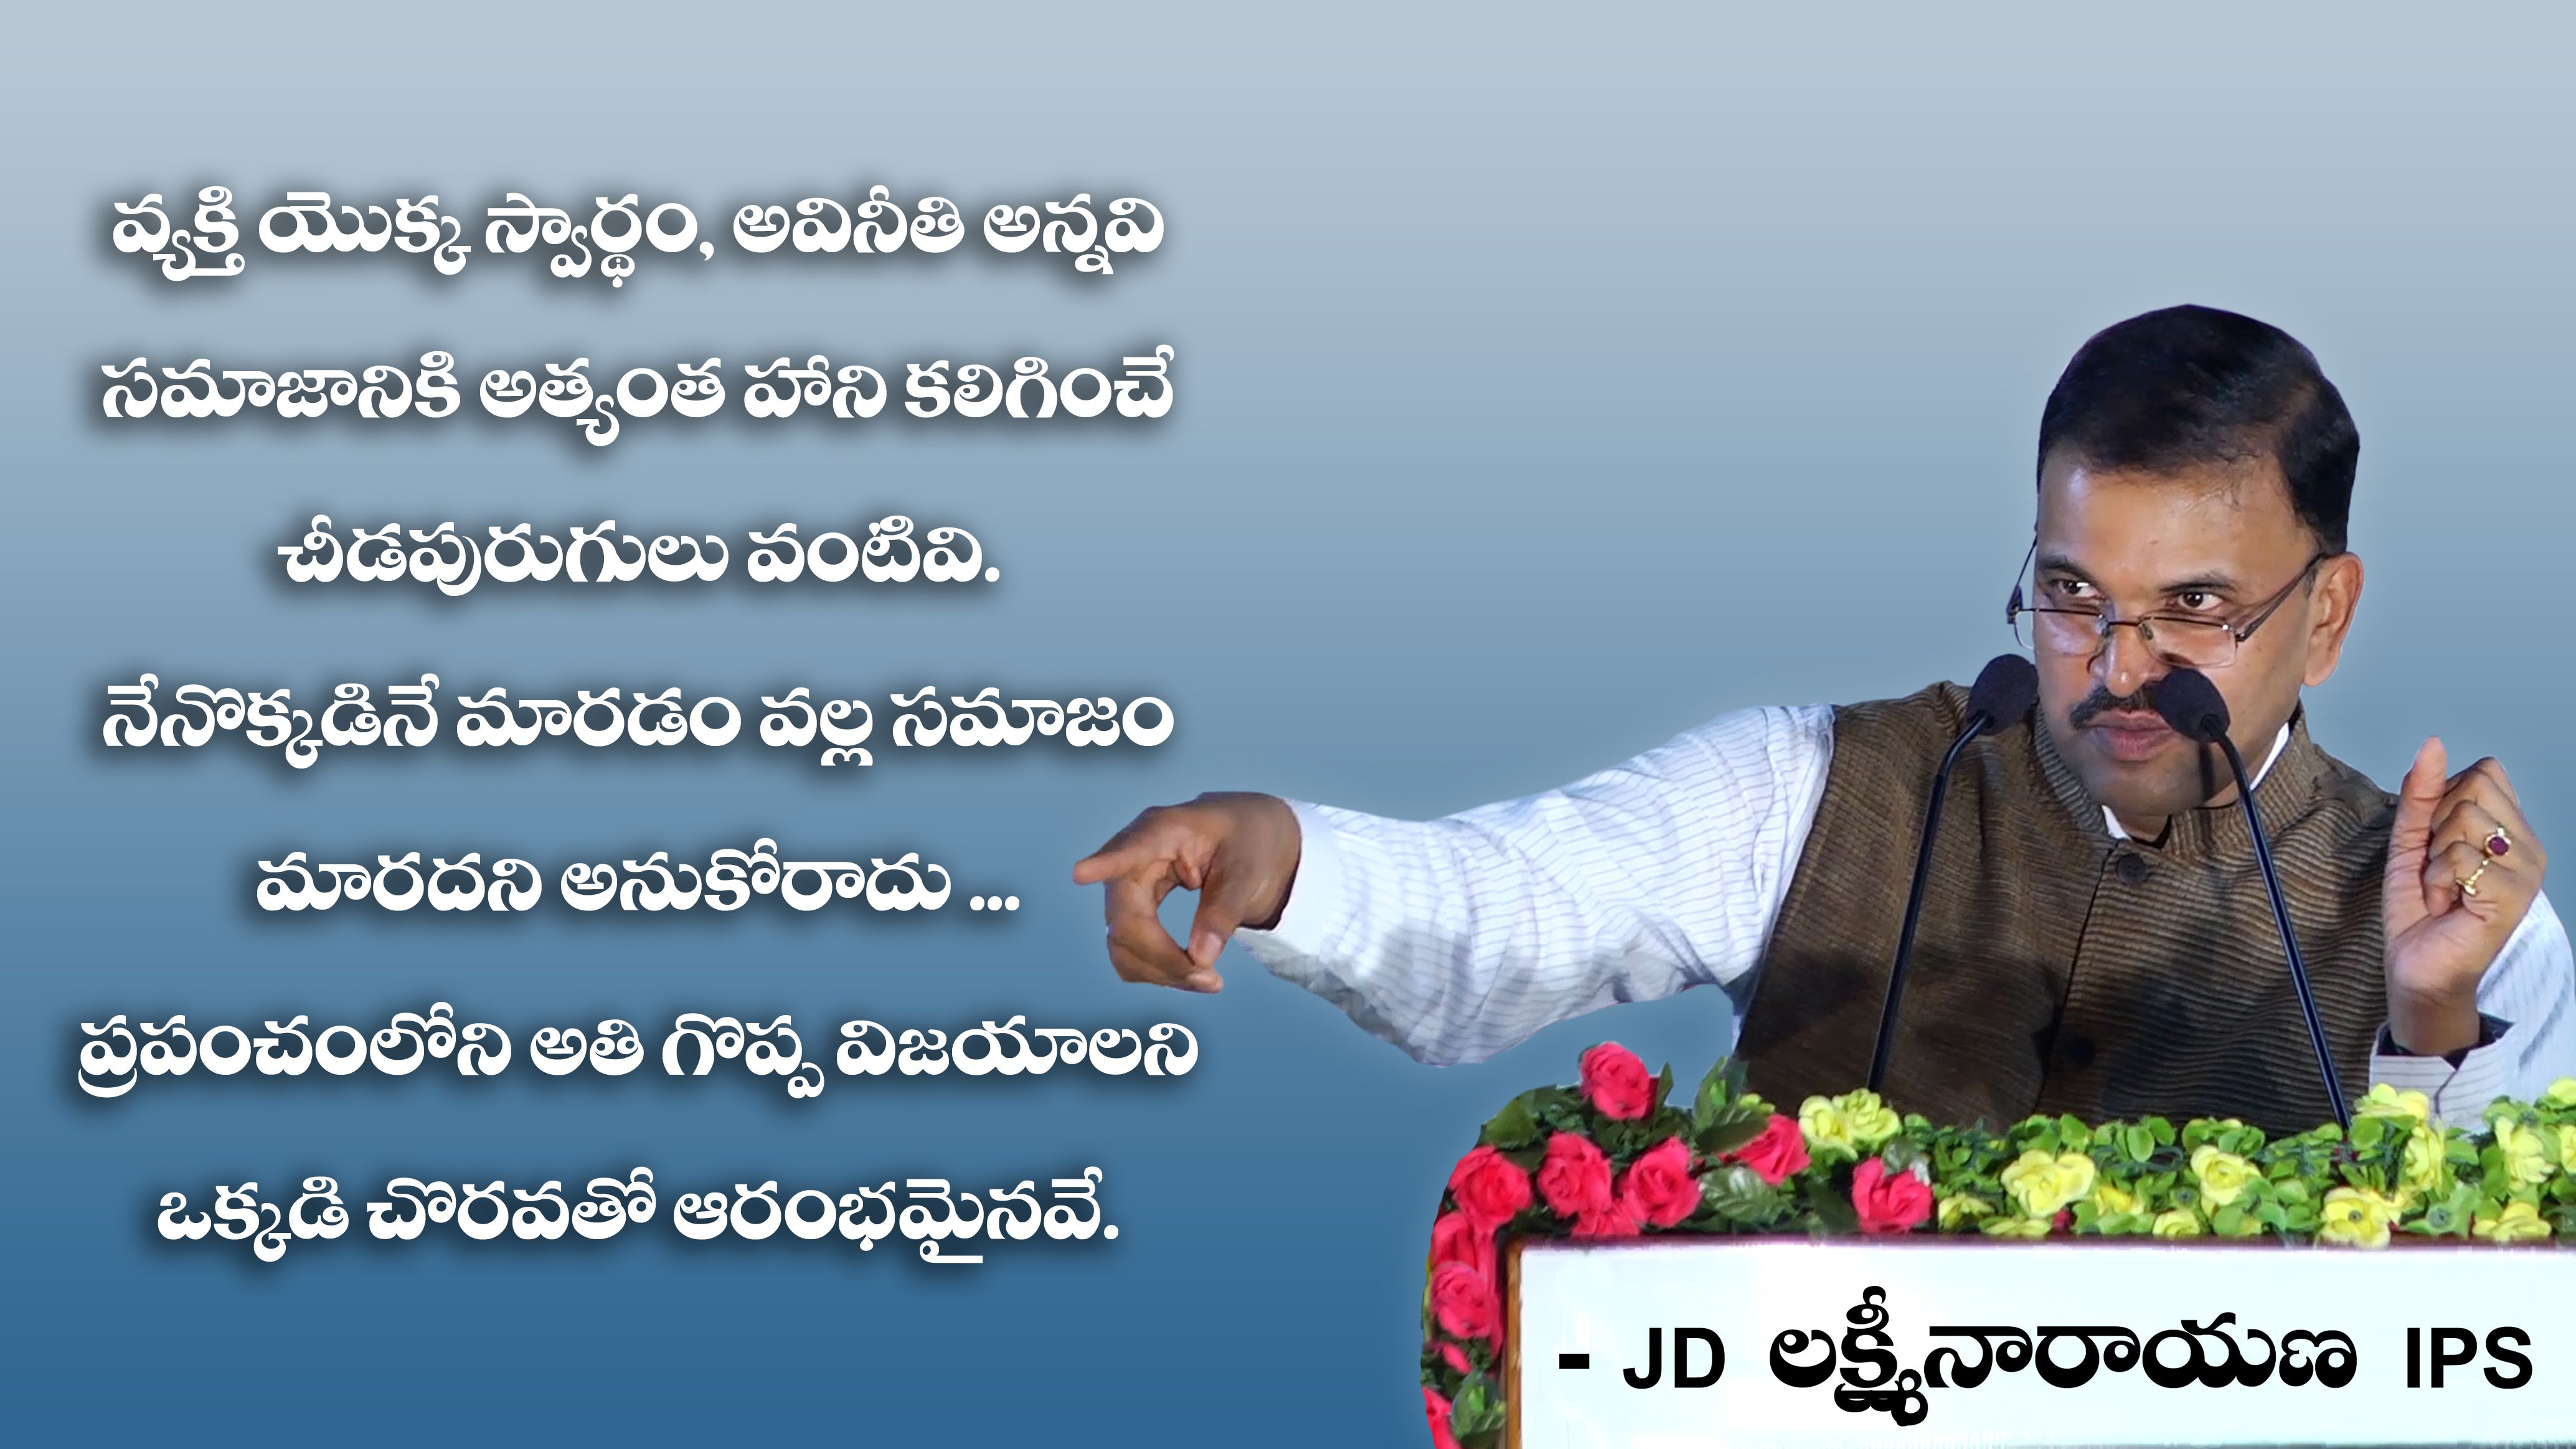 ap-news-new-political-party-agriculture,-education